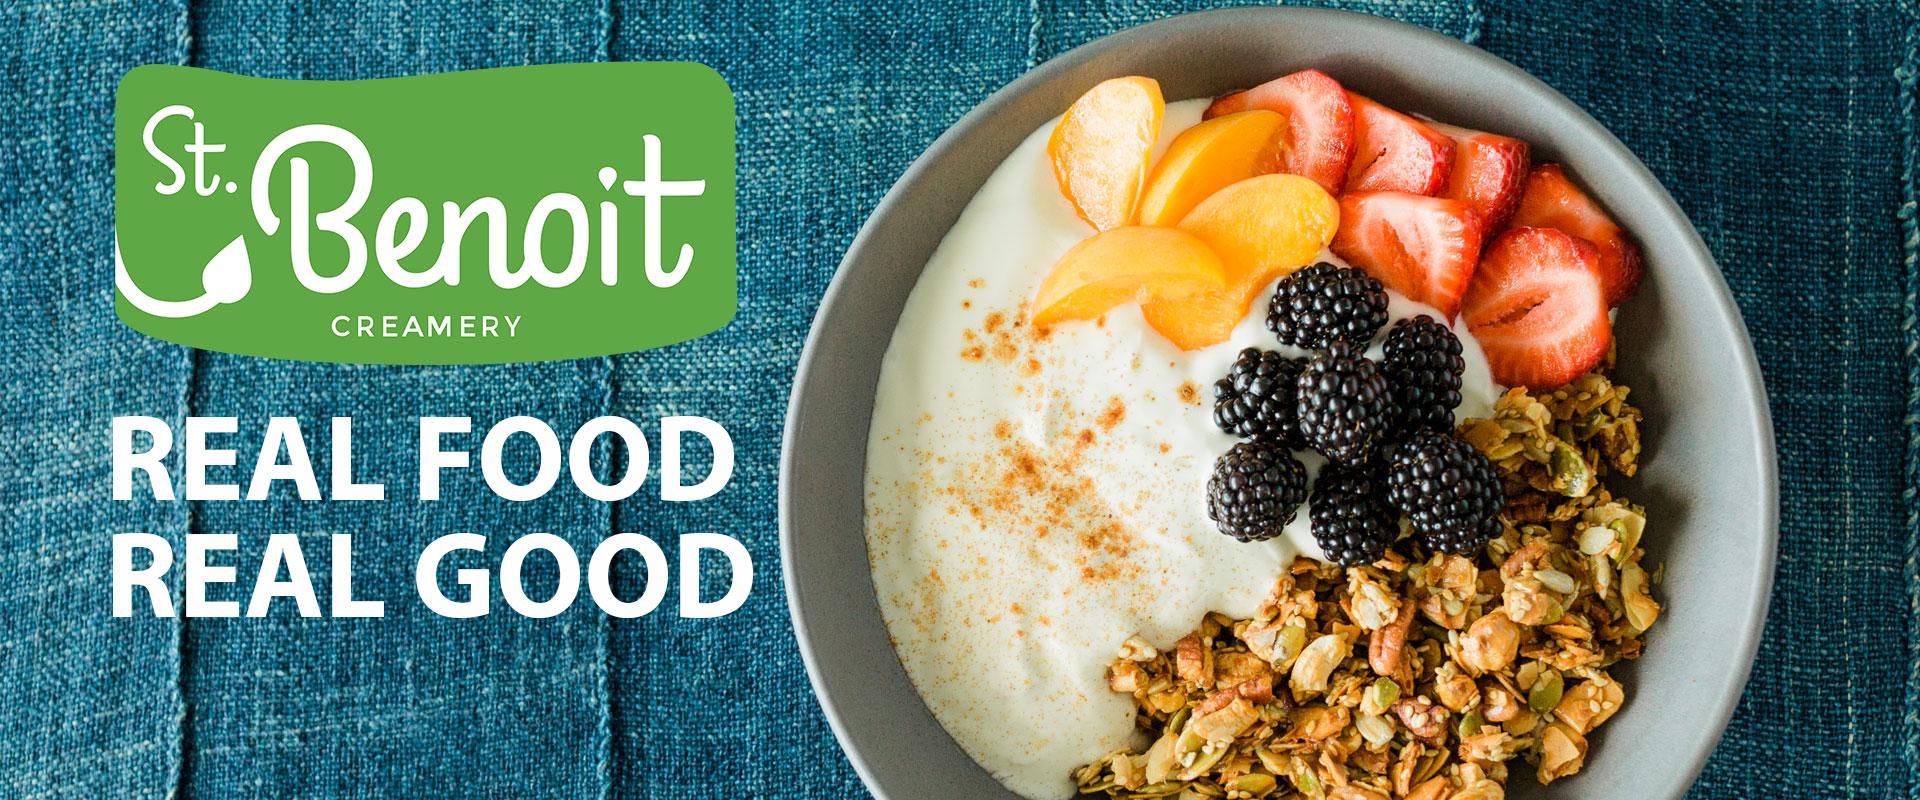 Imabe of St Benoit yogurt in a bowl with fruit and granola